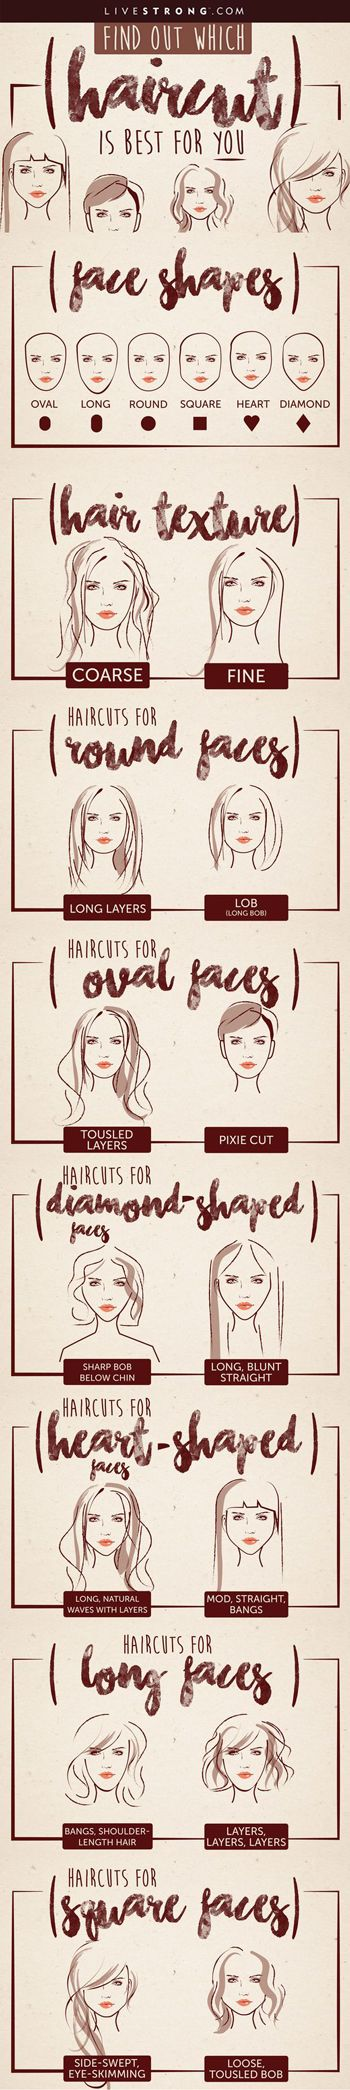 Best 25+ Face shapes ideas on Pinterest | Hairstyles for face ...